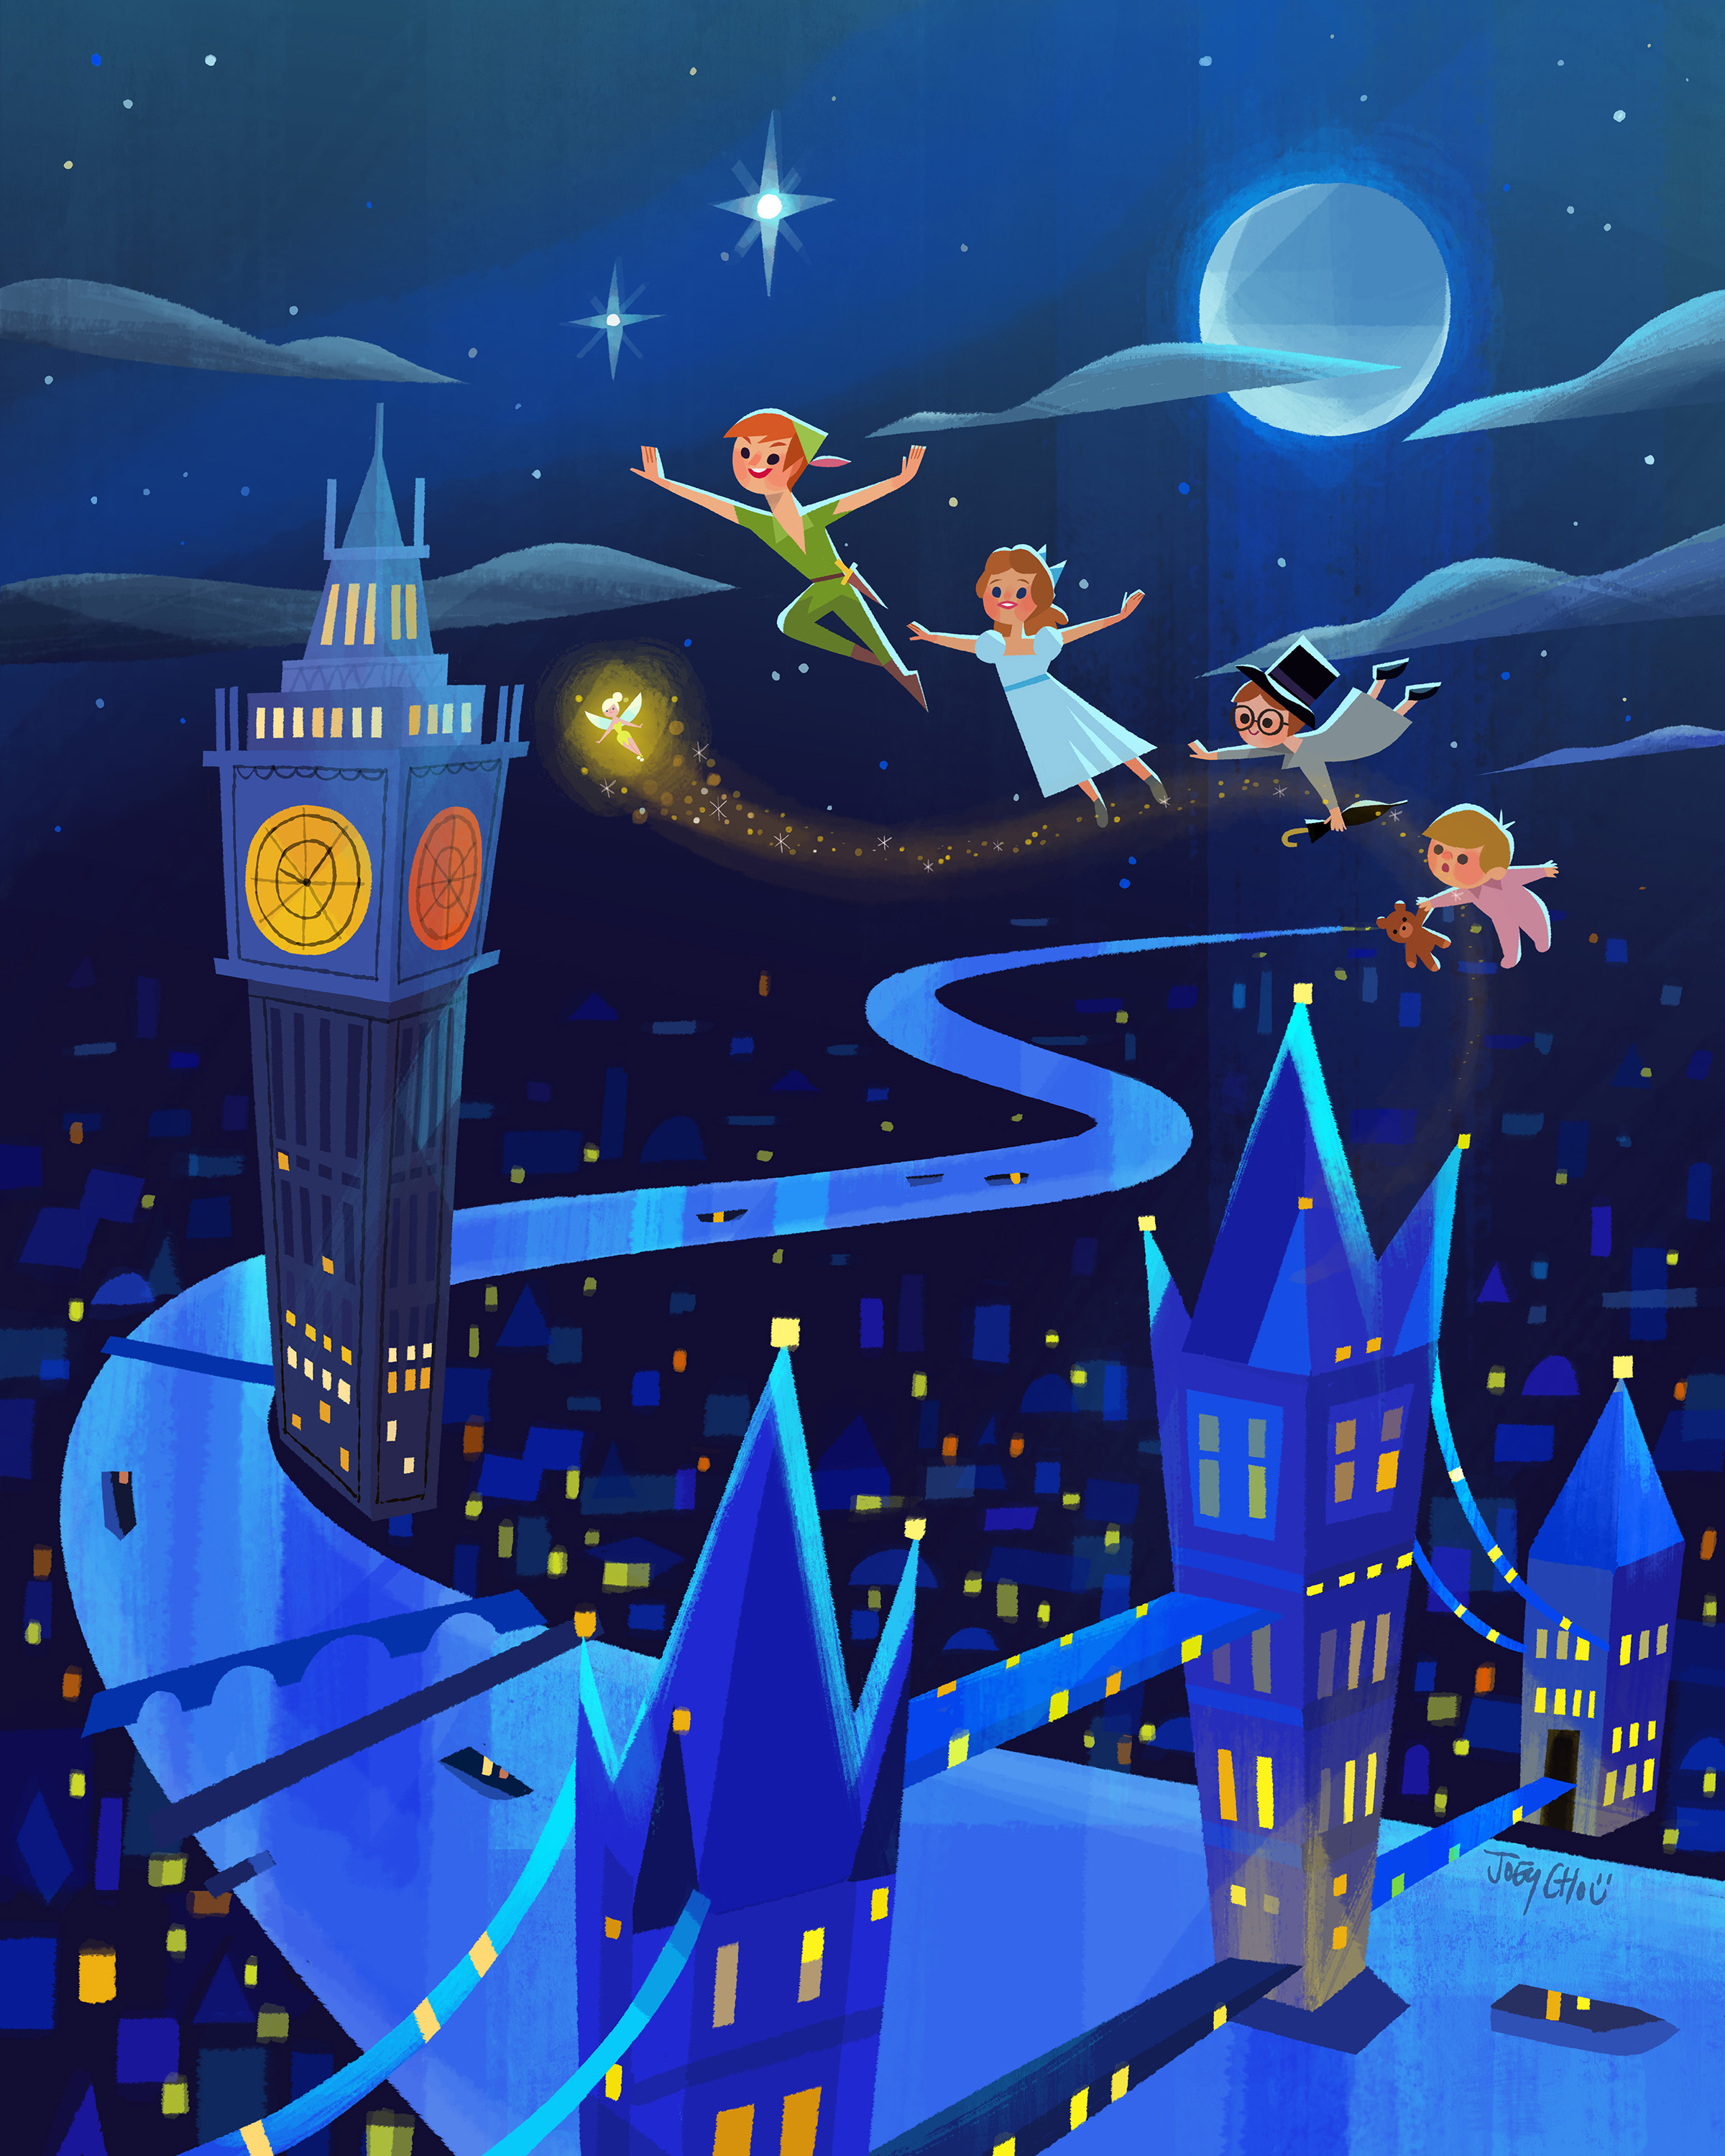 peter_pan_flight_over_london_joey_chou.jpg